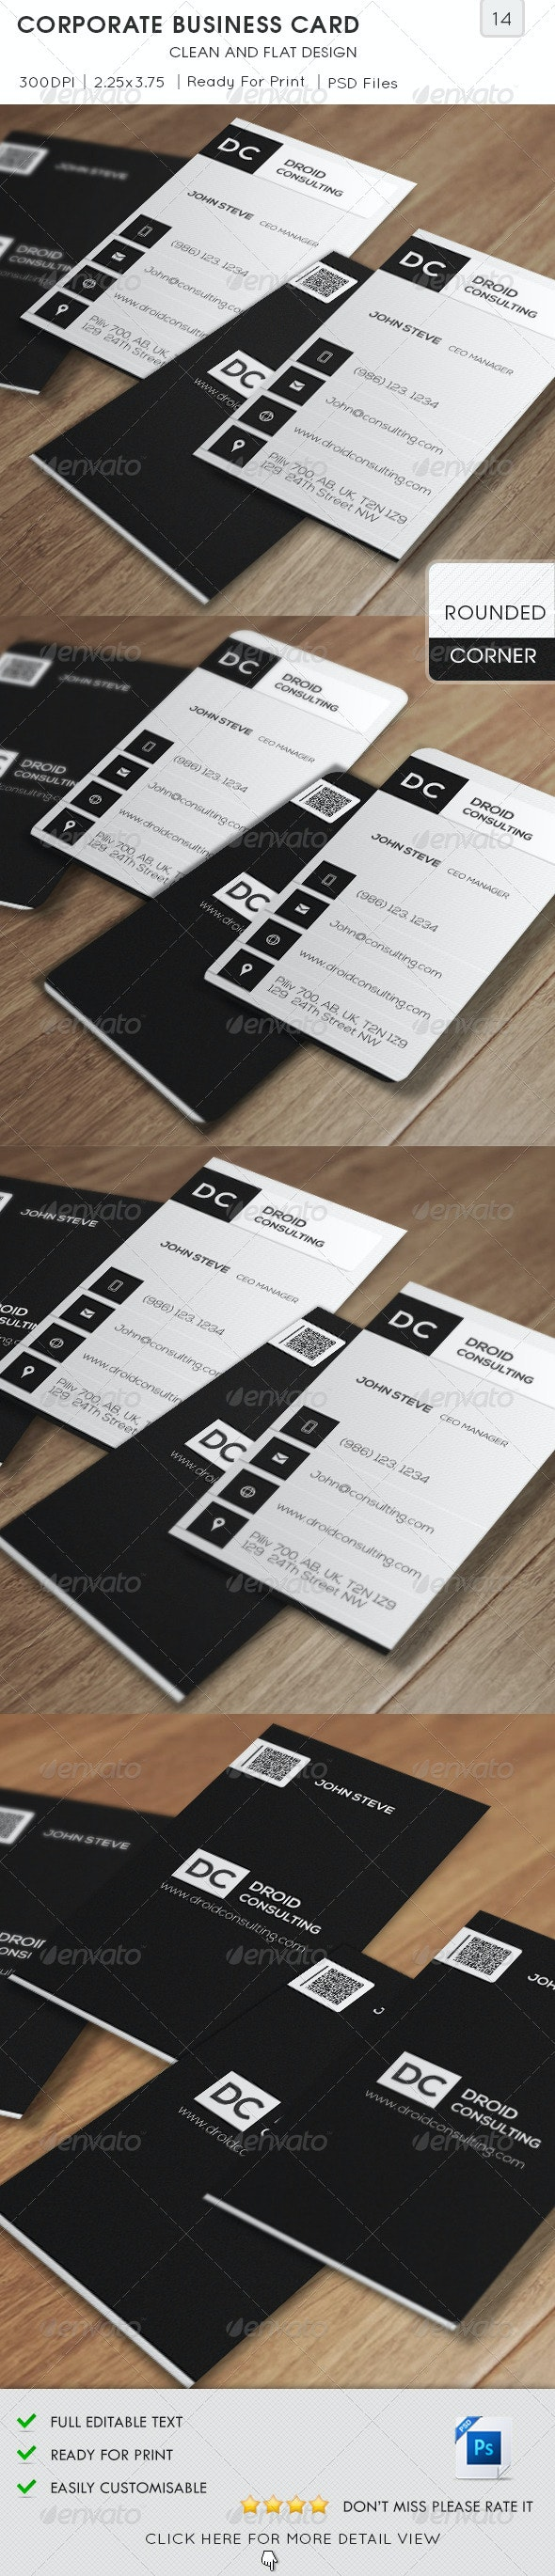 Corporate Business Card v14 - Corporate Business Cards